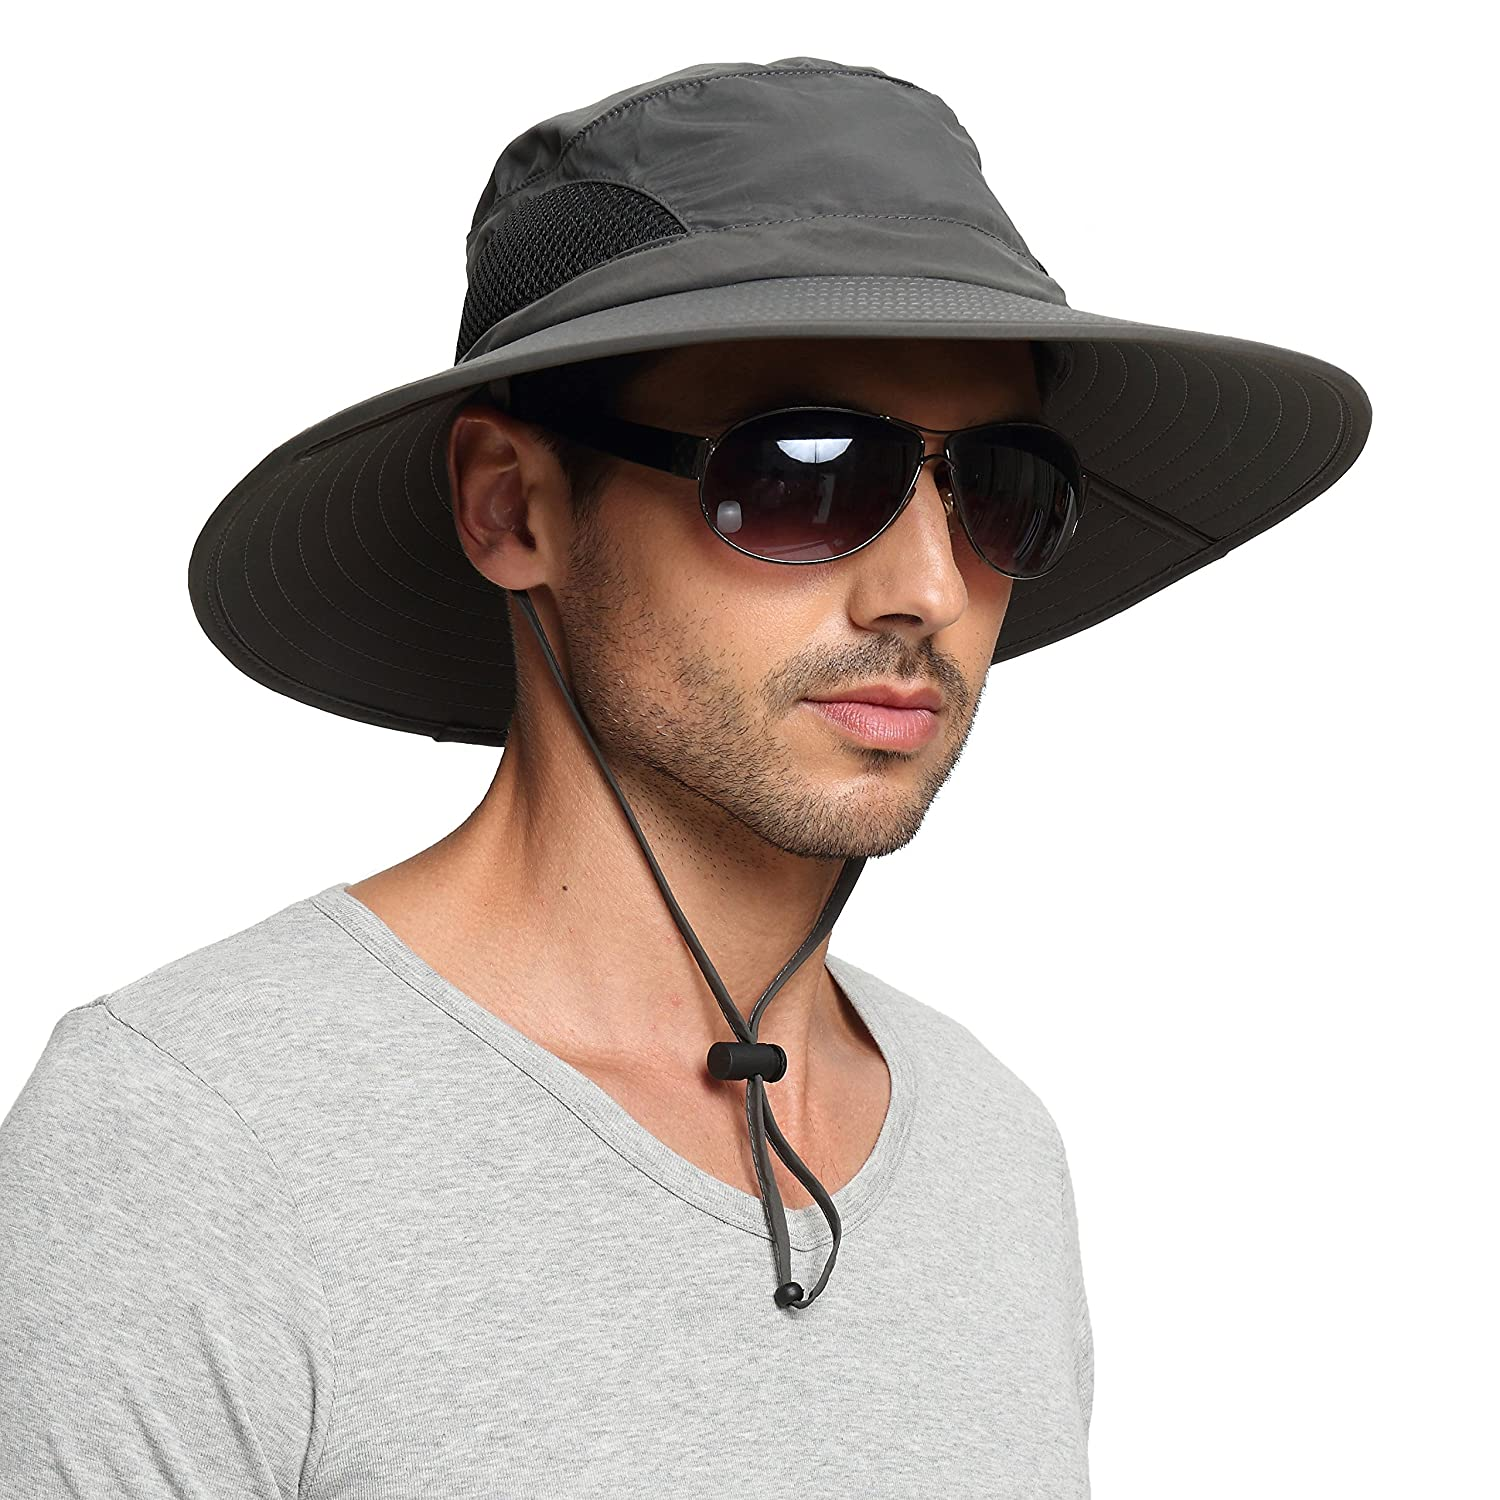 289931c3390 Amazon.com   EINSKEY Men s Waterproof Sun Hat